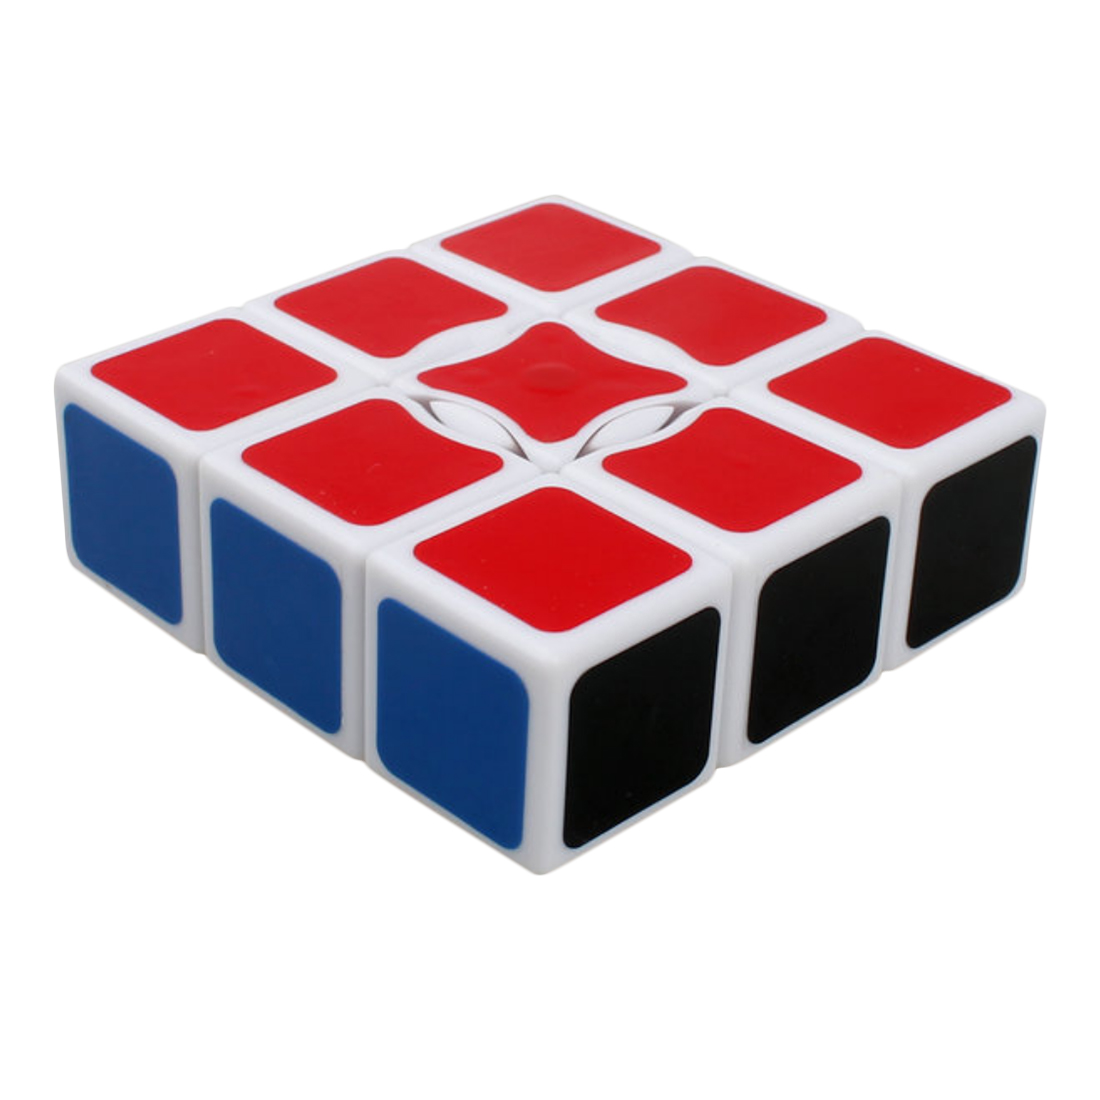 X-cube 1X3X3 Floppy Magic Cube Puzzle Casse-tête